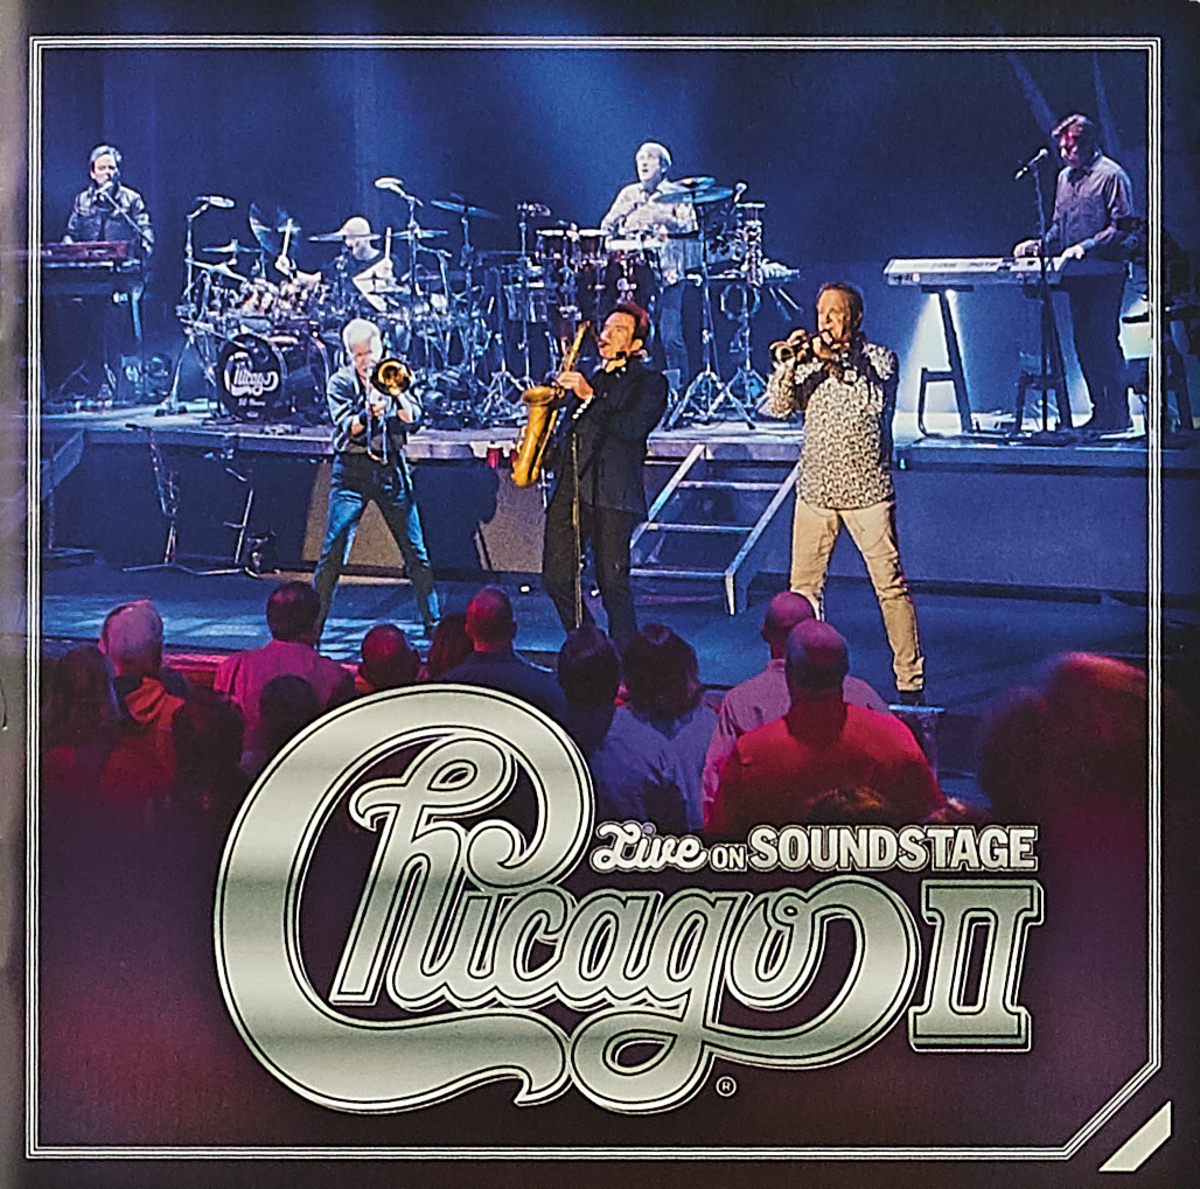 Chicago Chicago. Chicago II - Live On Soundstage (CD+DVD) chicago chicago 16